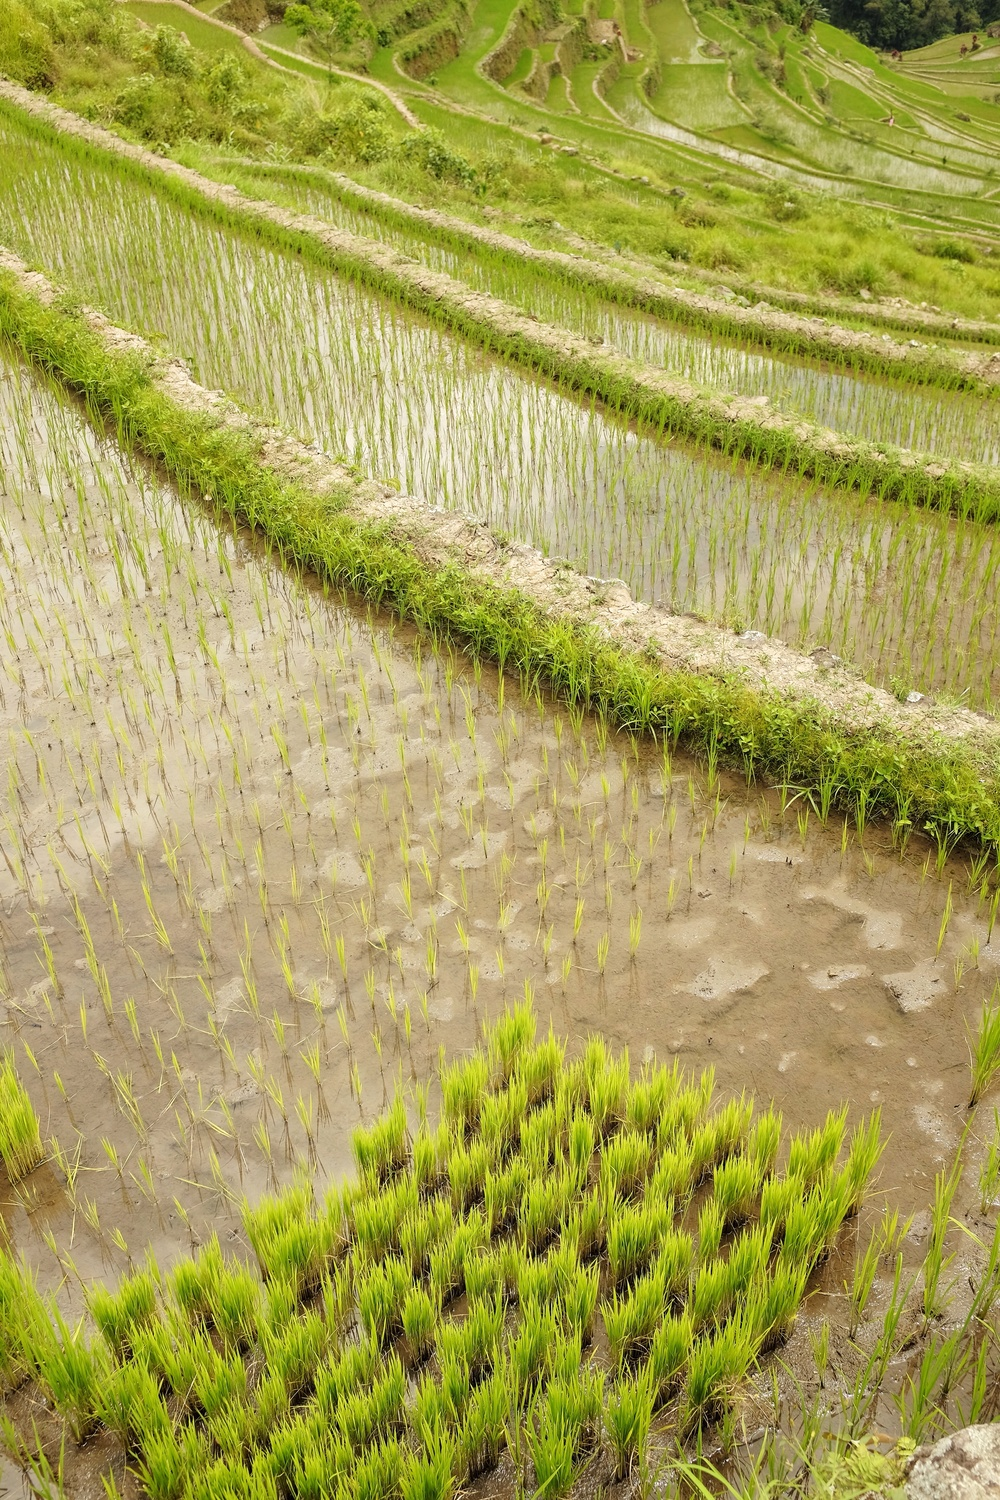 Rice clumps ready for transplanting and spreading out in the next step of the cultivation process.